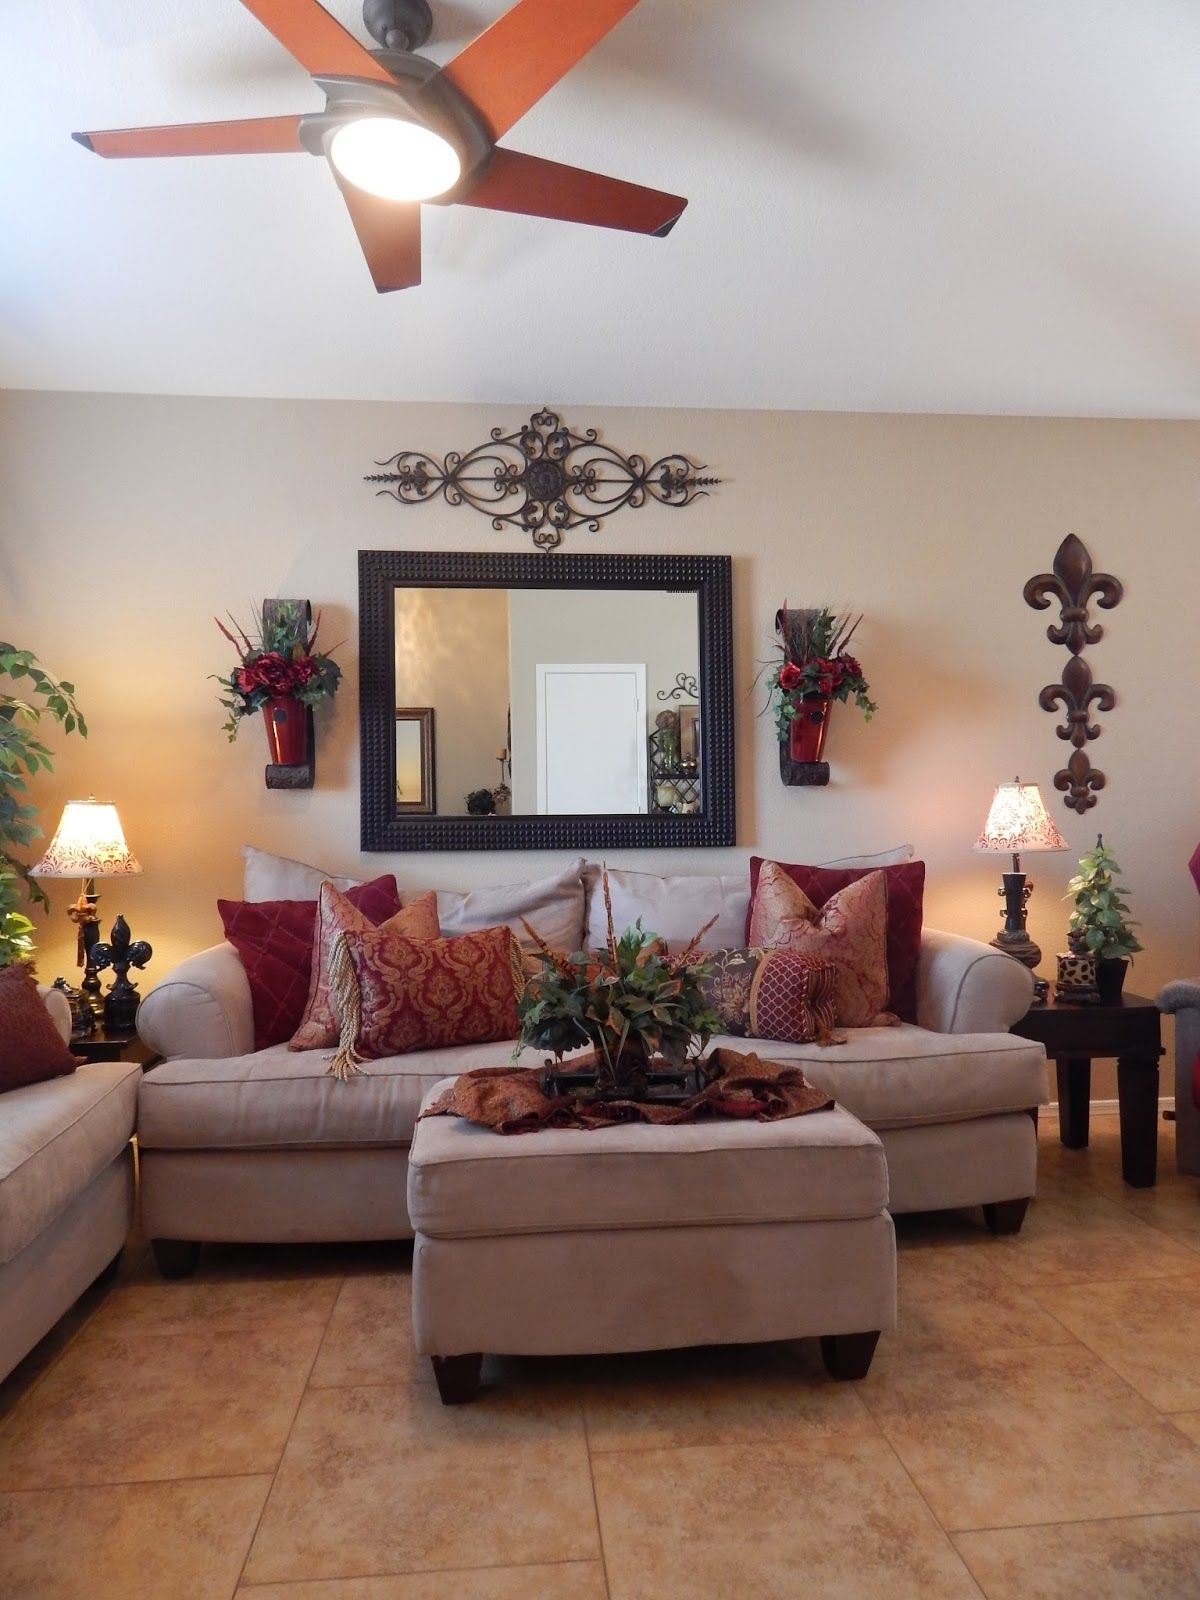 No place like our home front living room tour dream home